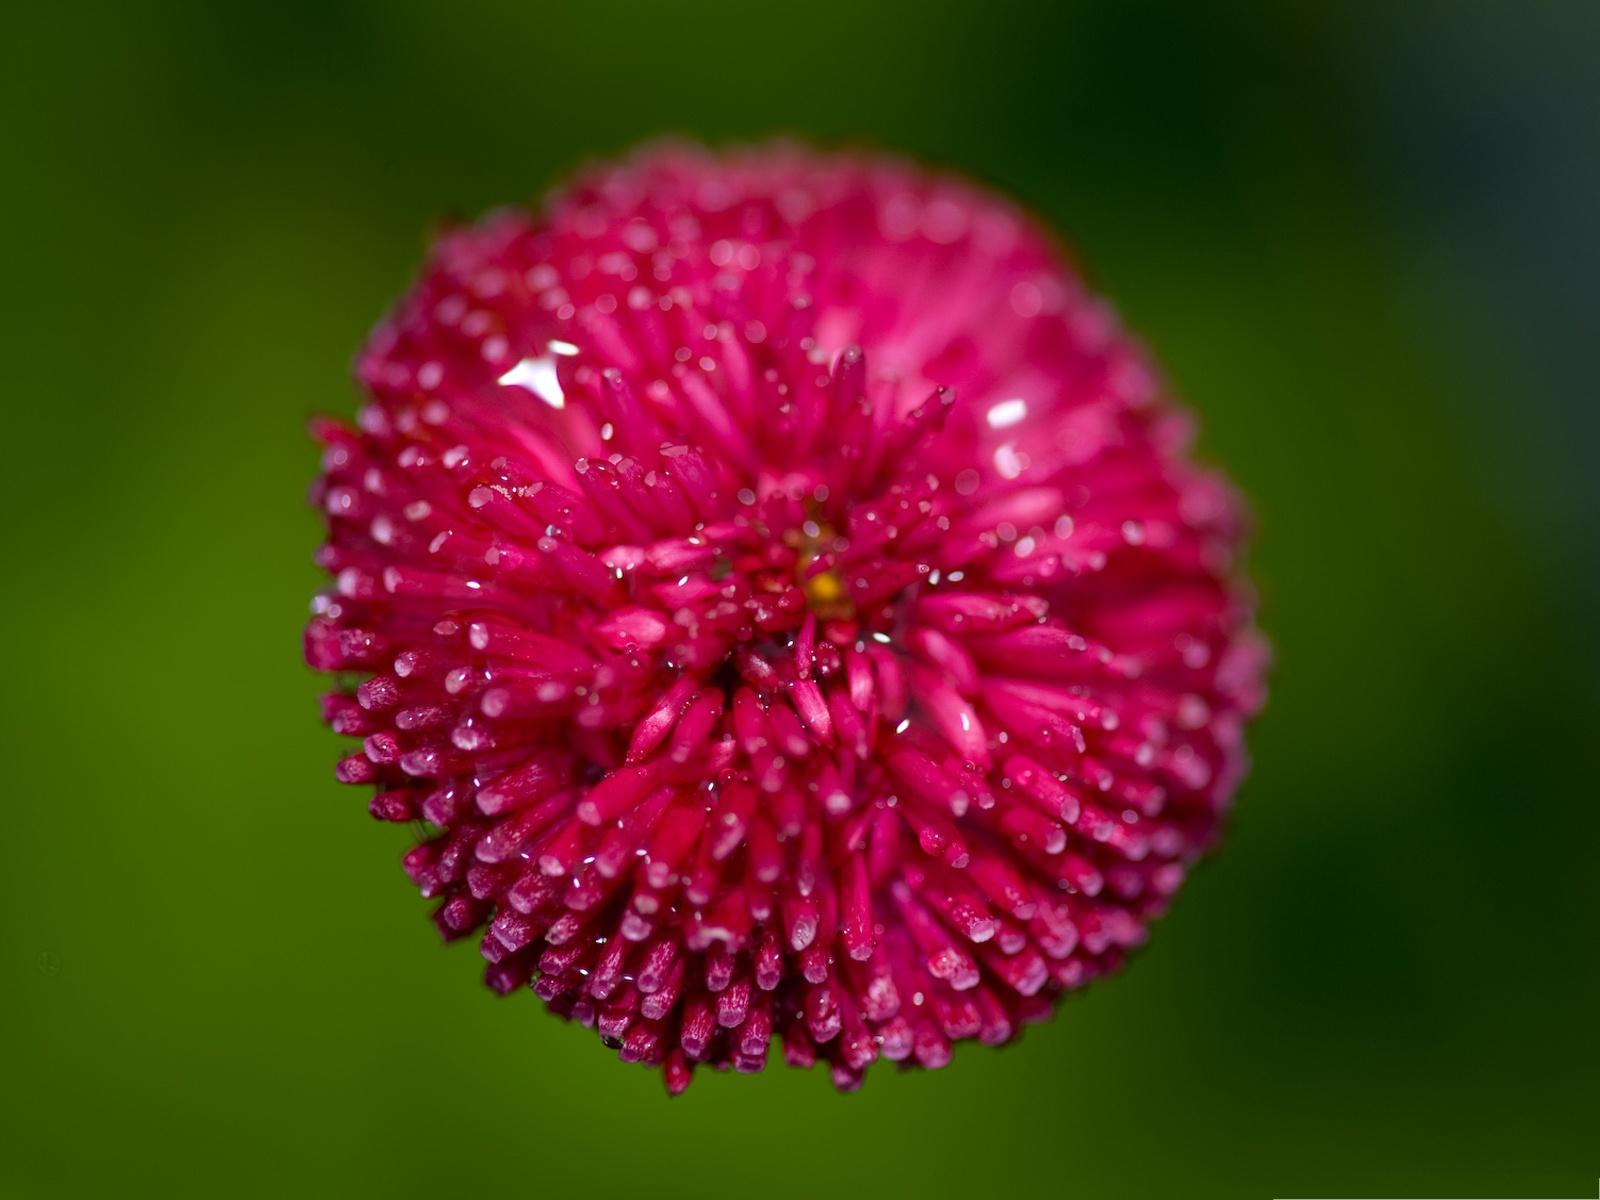 click to free download the wallpaper--Pink Flower Photos, Blooming Pink Flower Put Against Green Background, Fresh Waterdrops on It 1600X1200 free wallpaper download